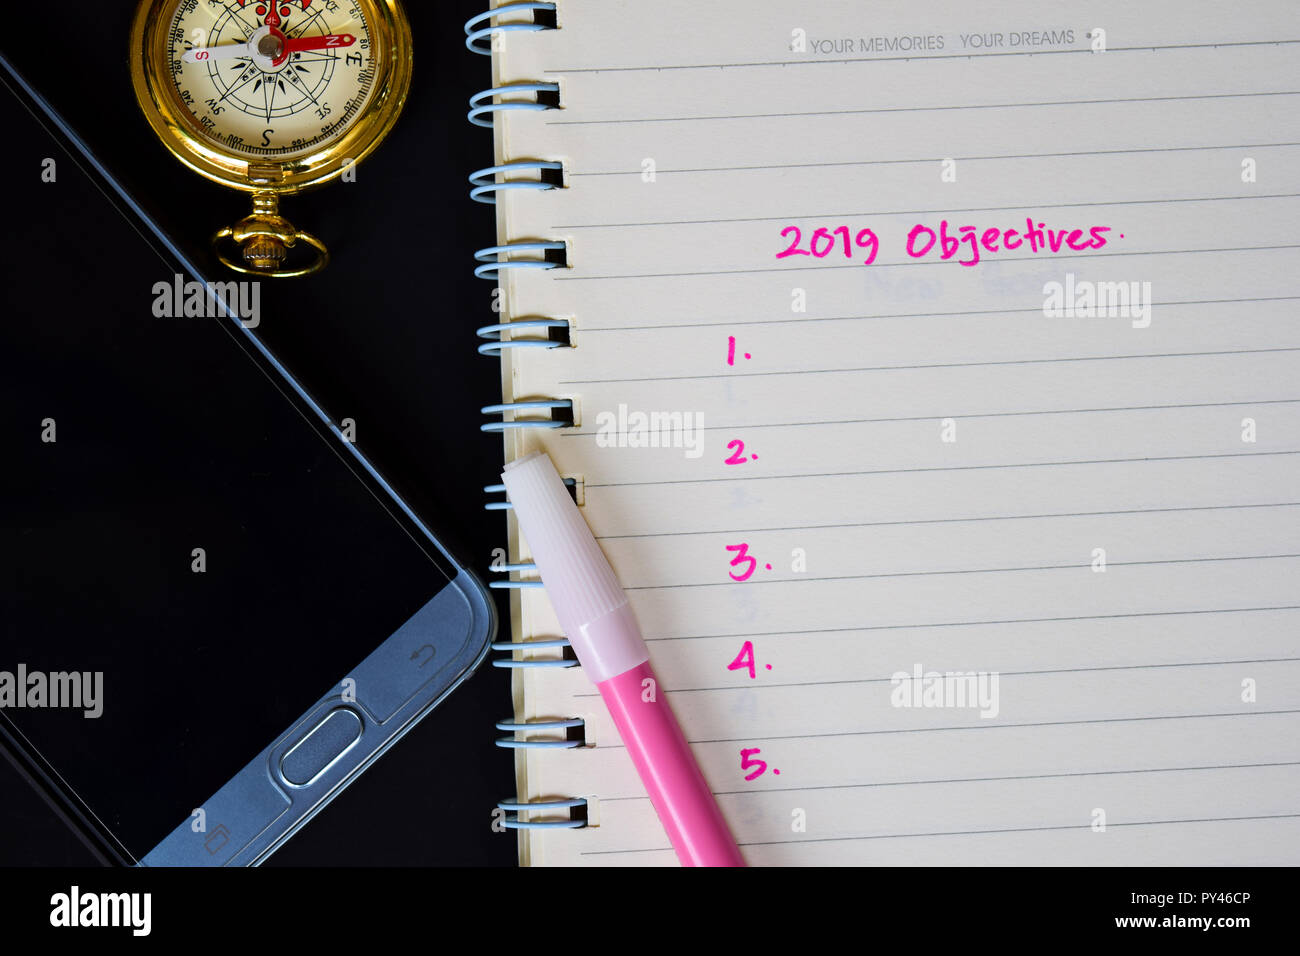 2019 Objectives text on notebook, compass, color pencil, smartphone on black background, for business presentation mock up for adding your list - Stock Image